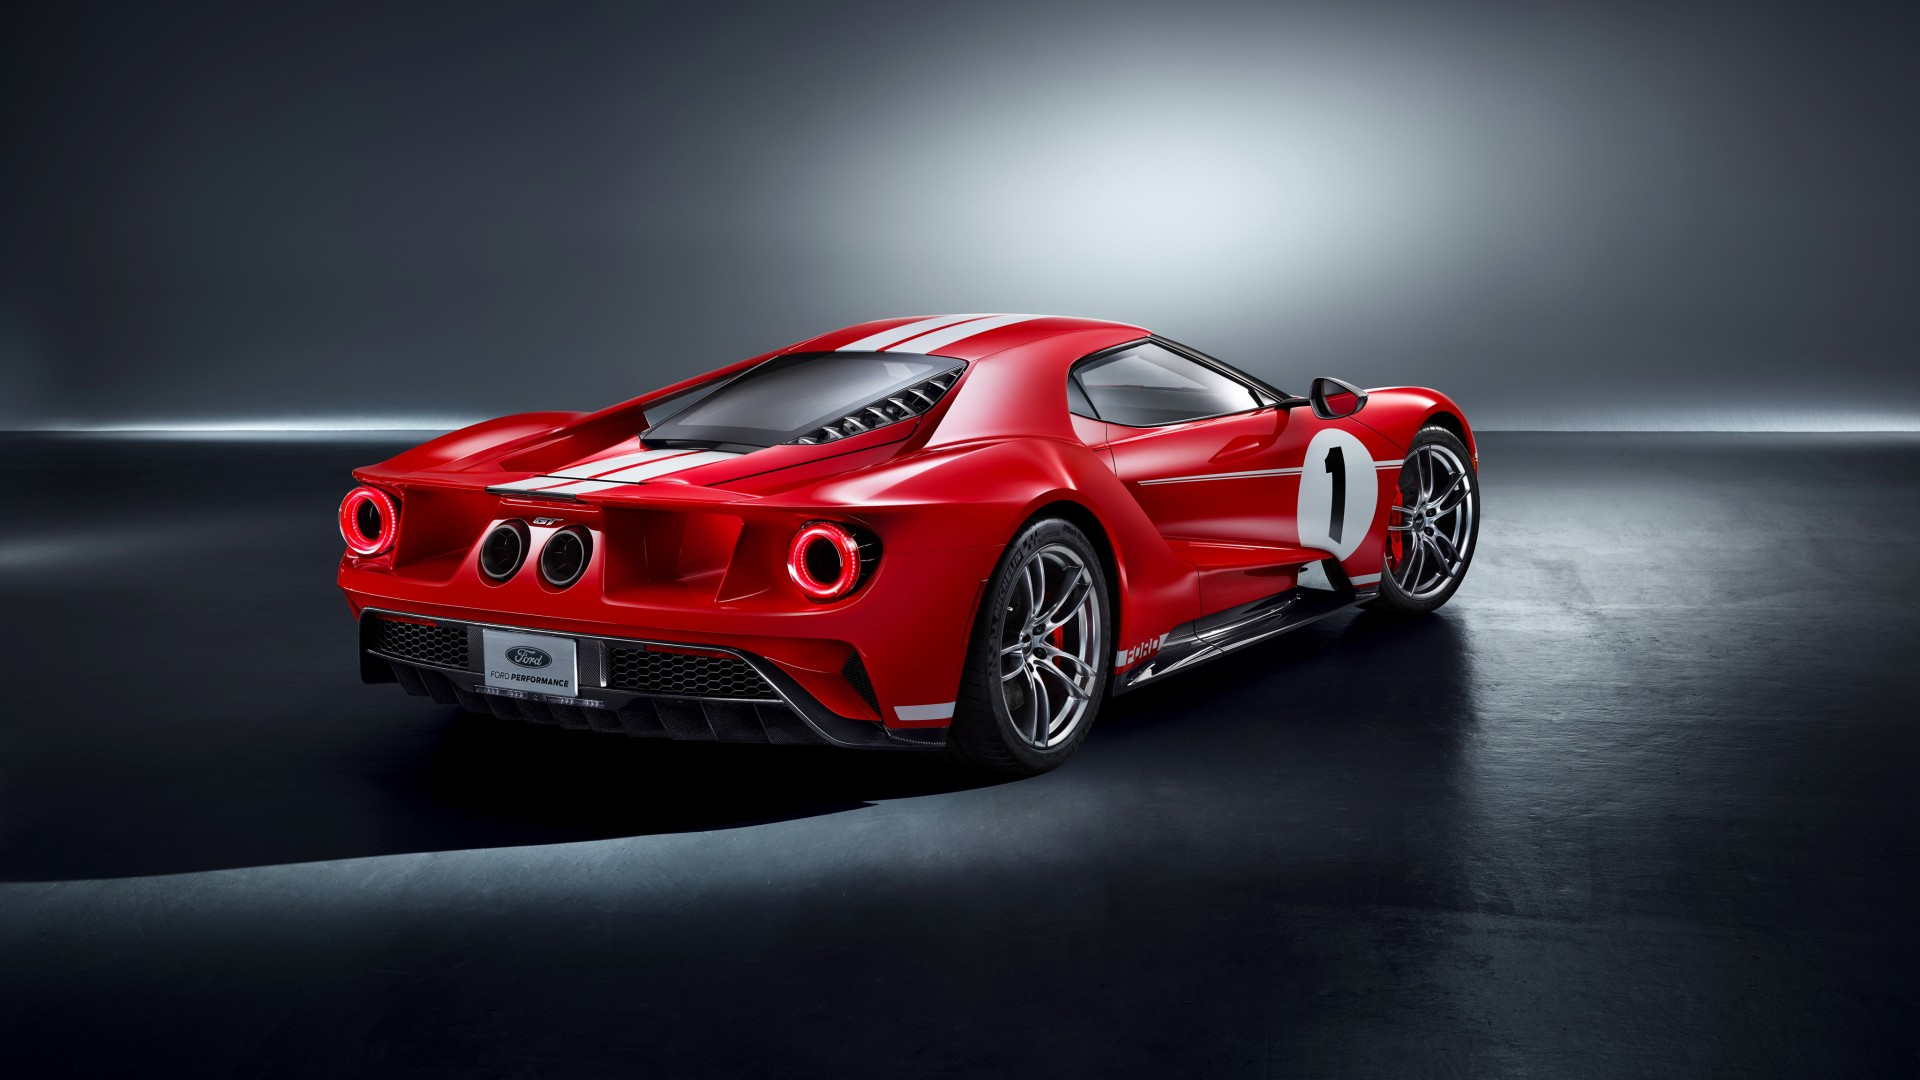 Red Lamborghini Car Wallpaper 2018 Ford Gt 67 Heritage Edition 4k 2 Wallpaper Hd Car